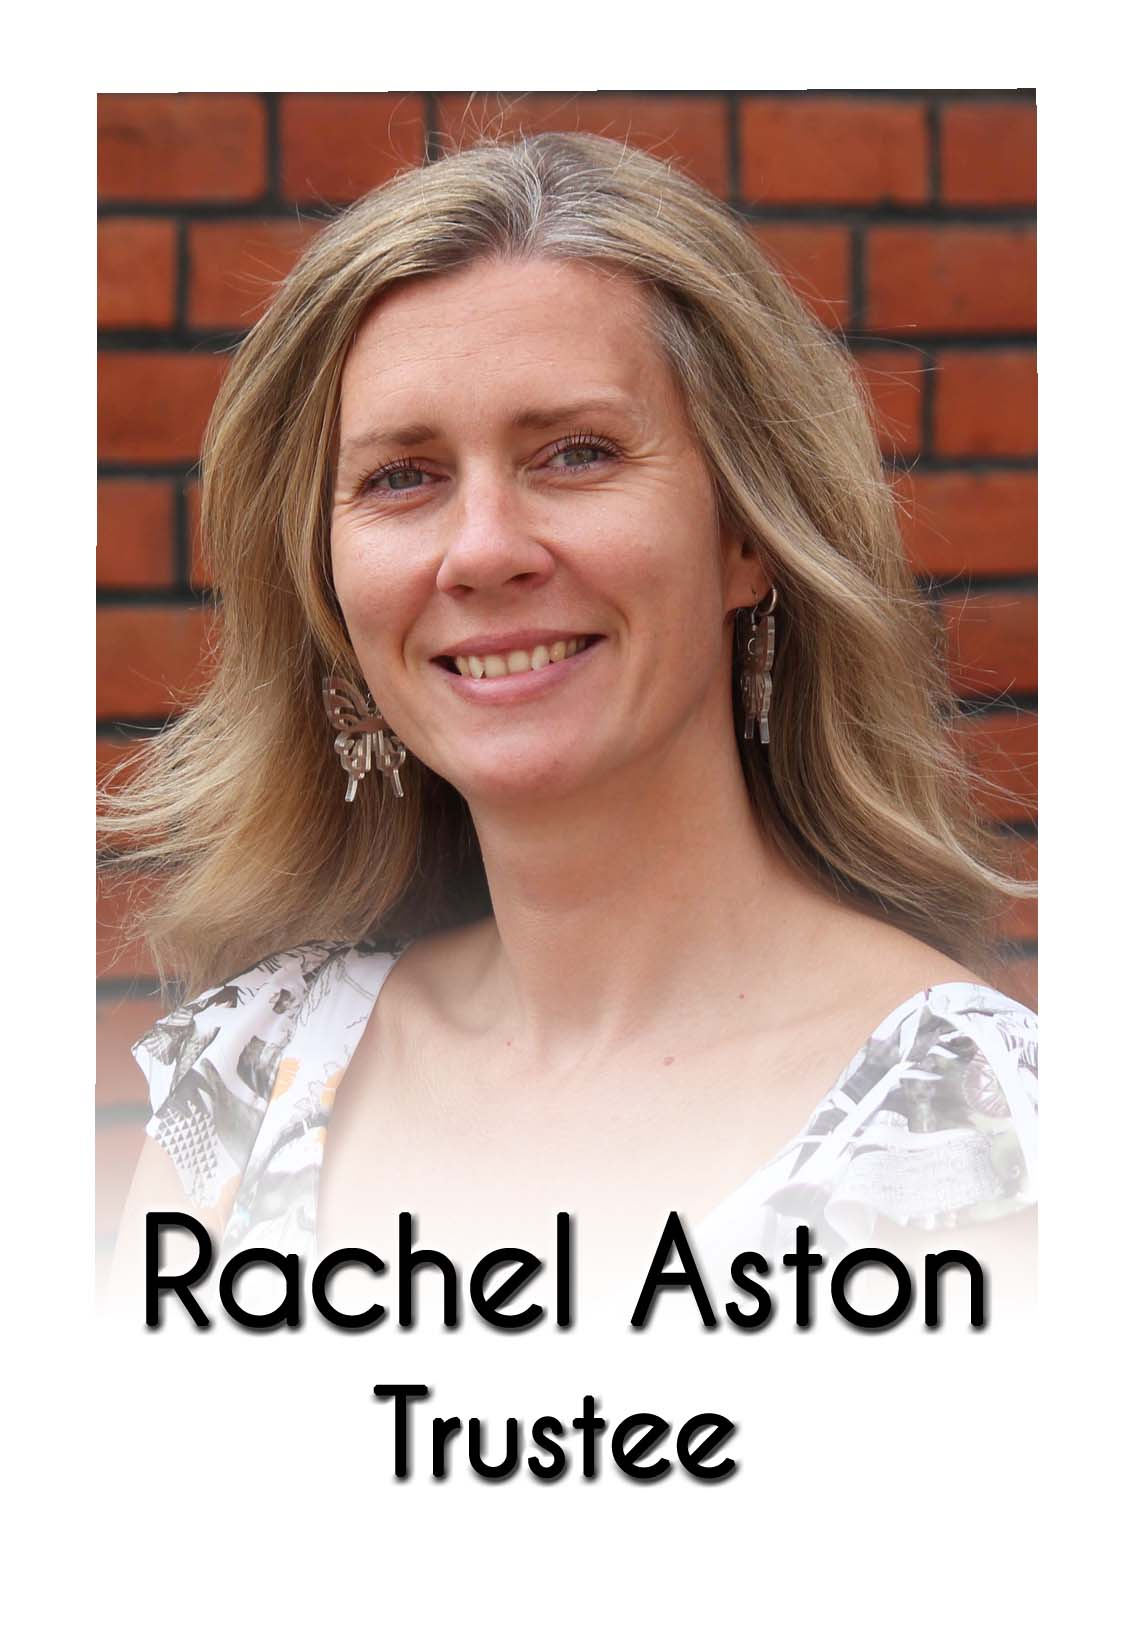 Rachel Aston labelled